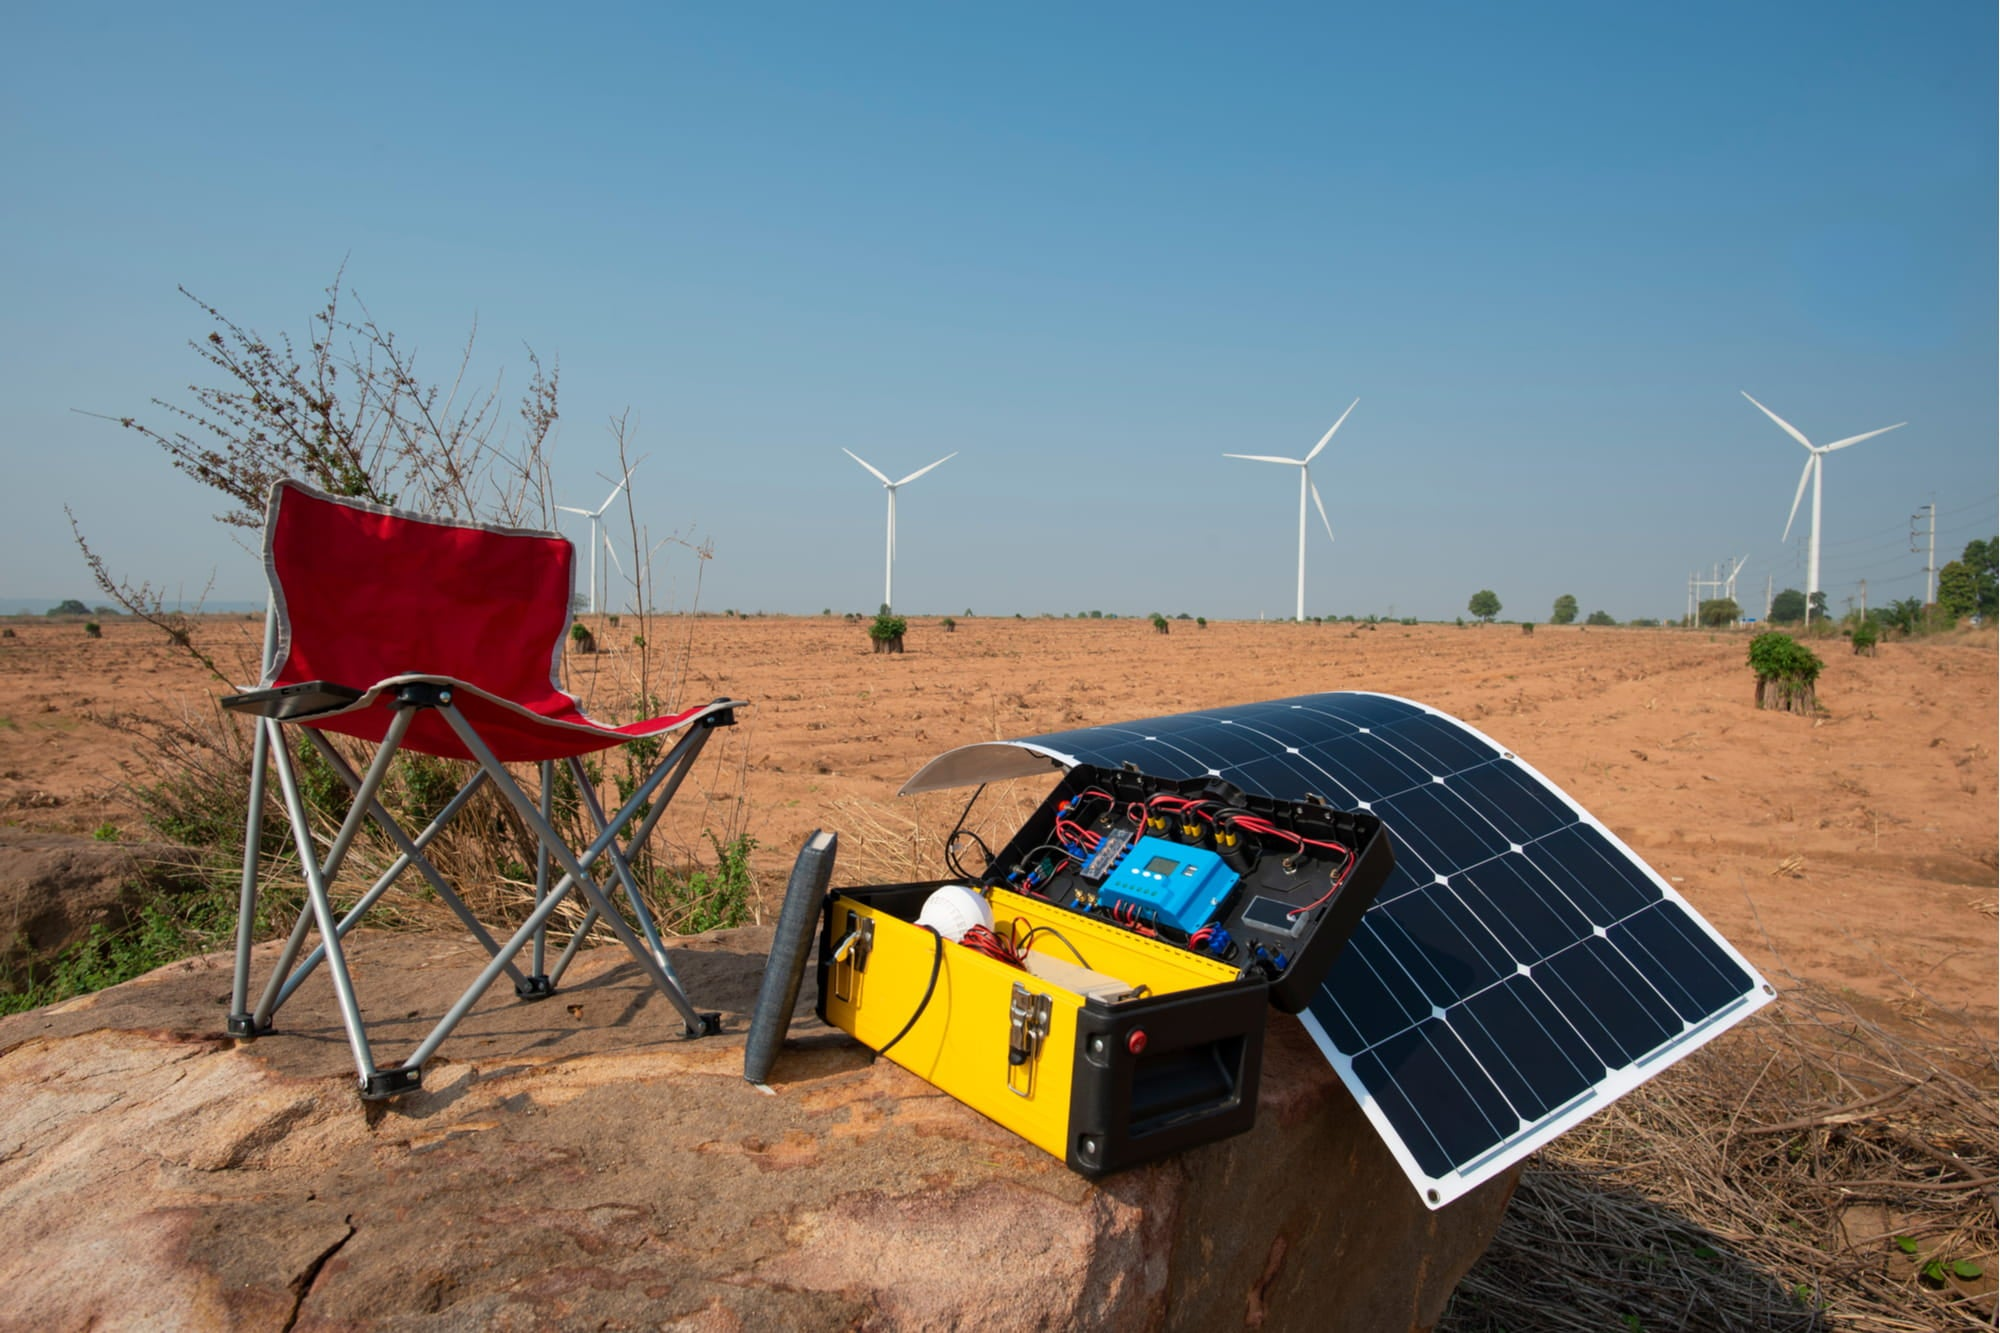 a chair next to a solar generator in a desert near wind turbines